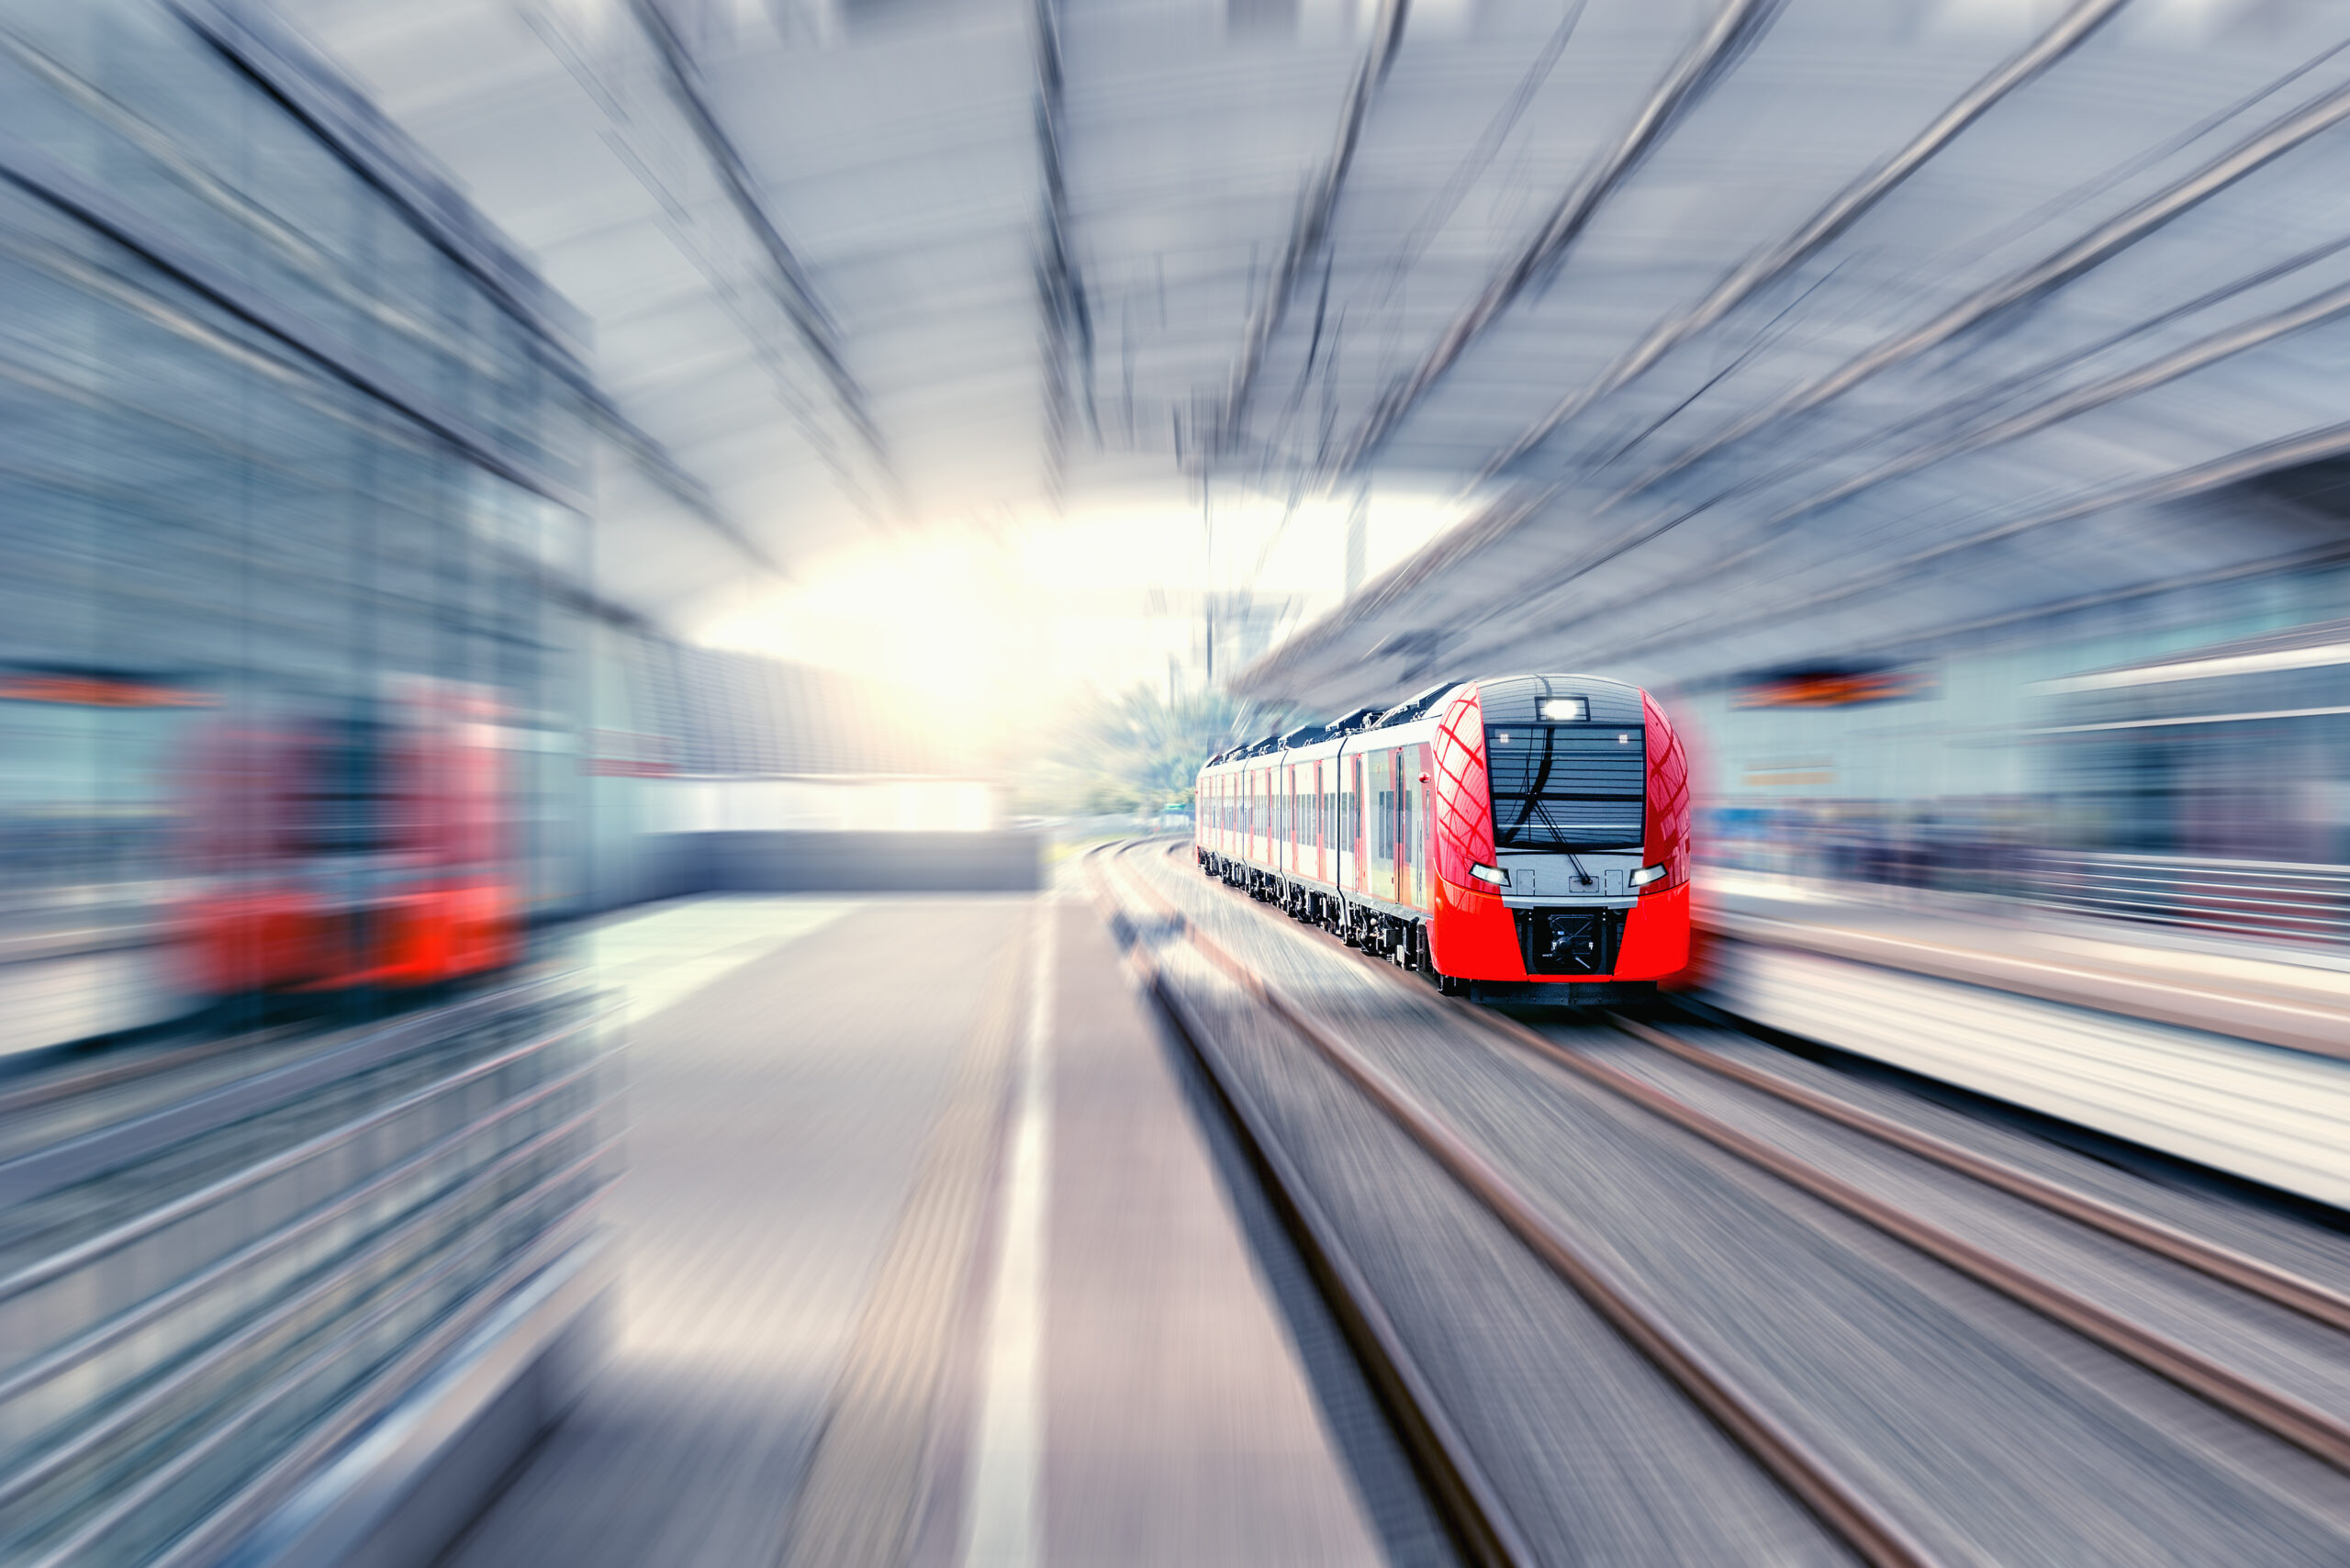 RAILEYE® keep the train safe at stations and beyond